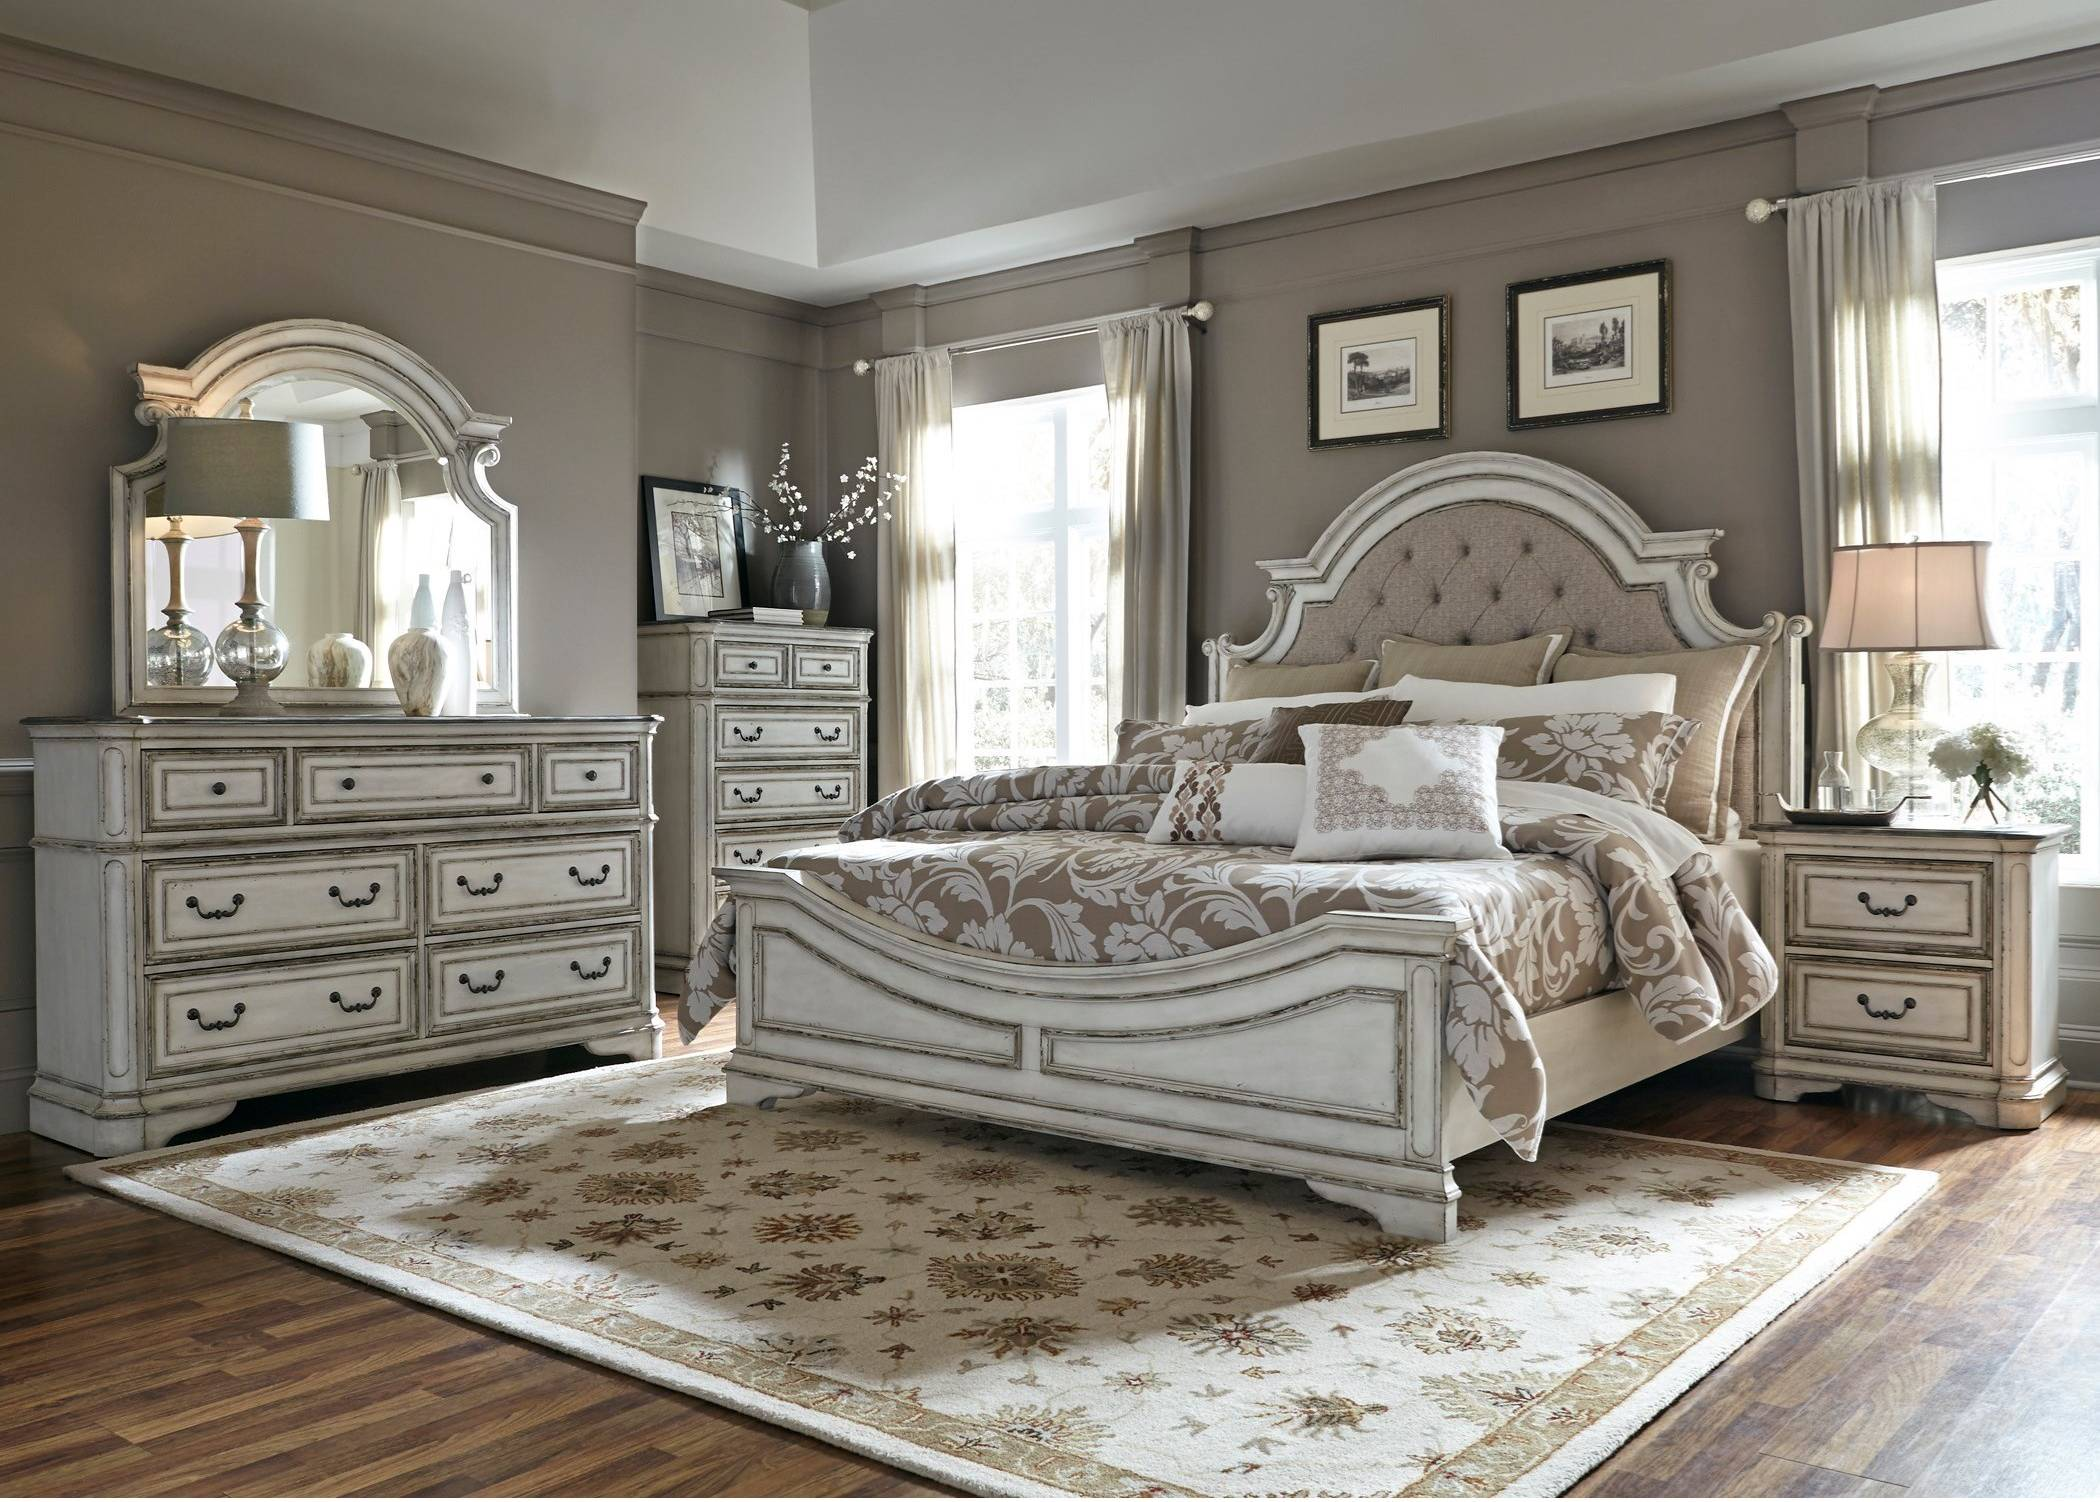 Magnolia Manor King Upholstered Bed Set - King $2099